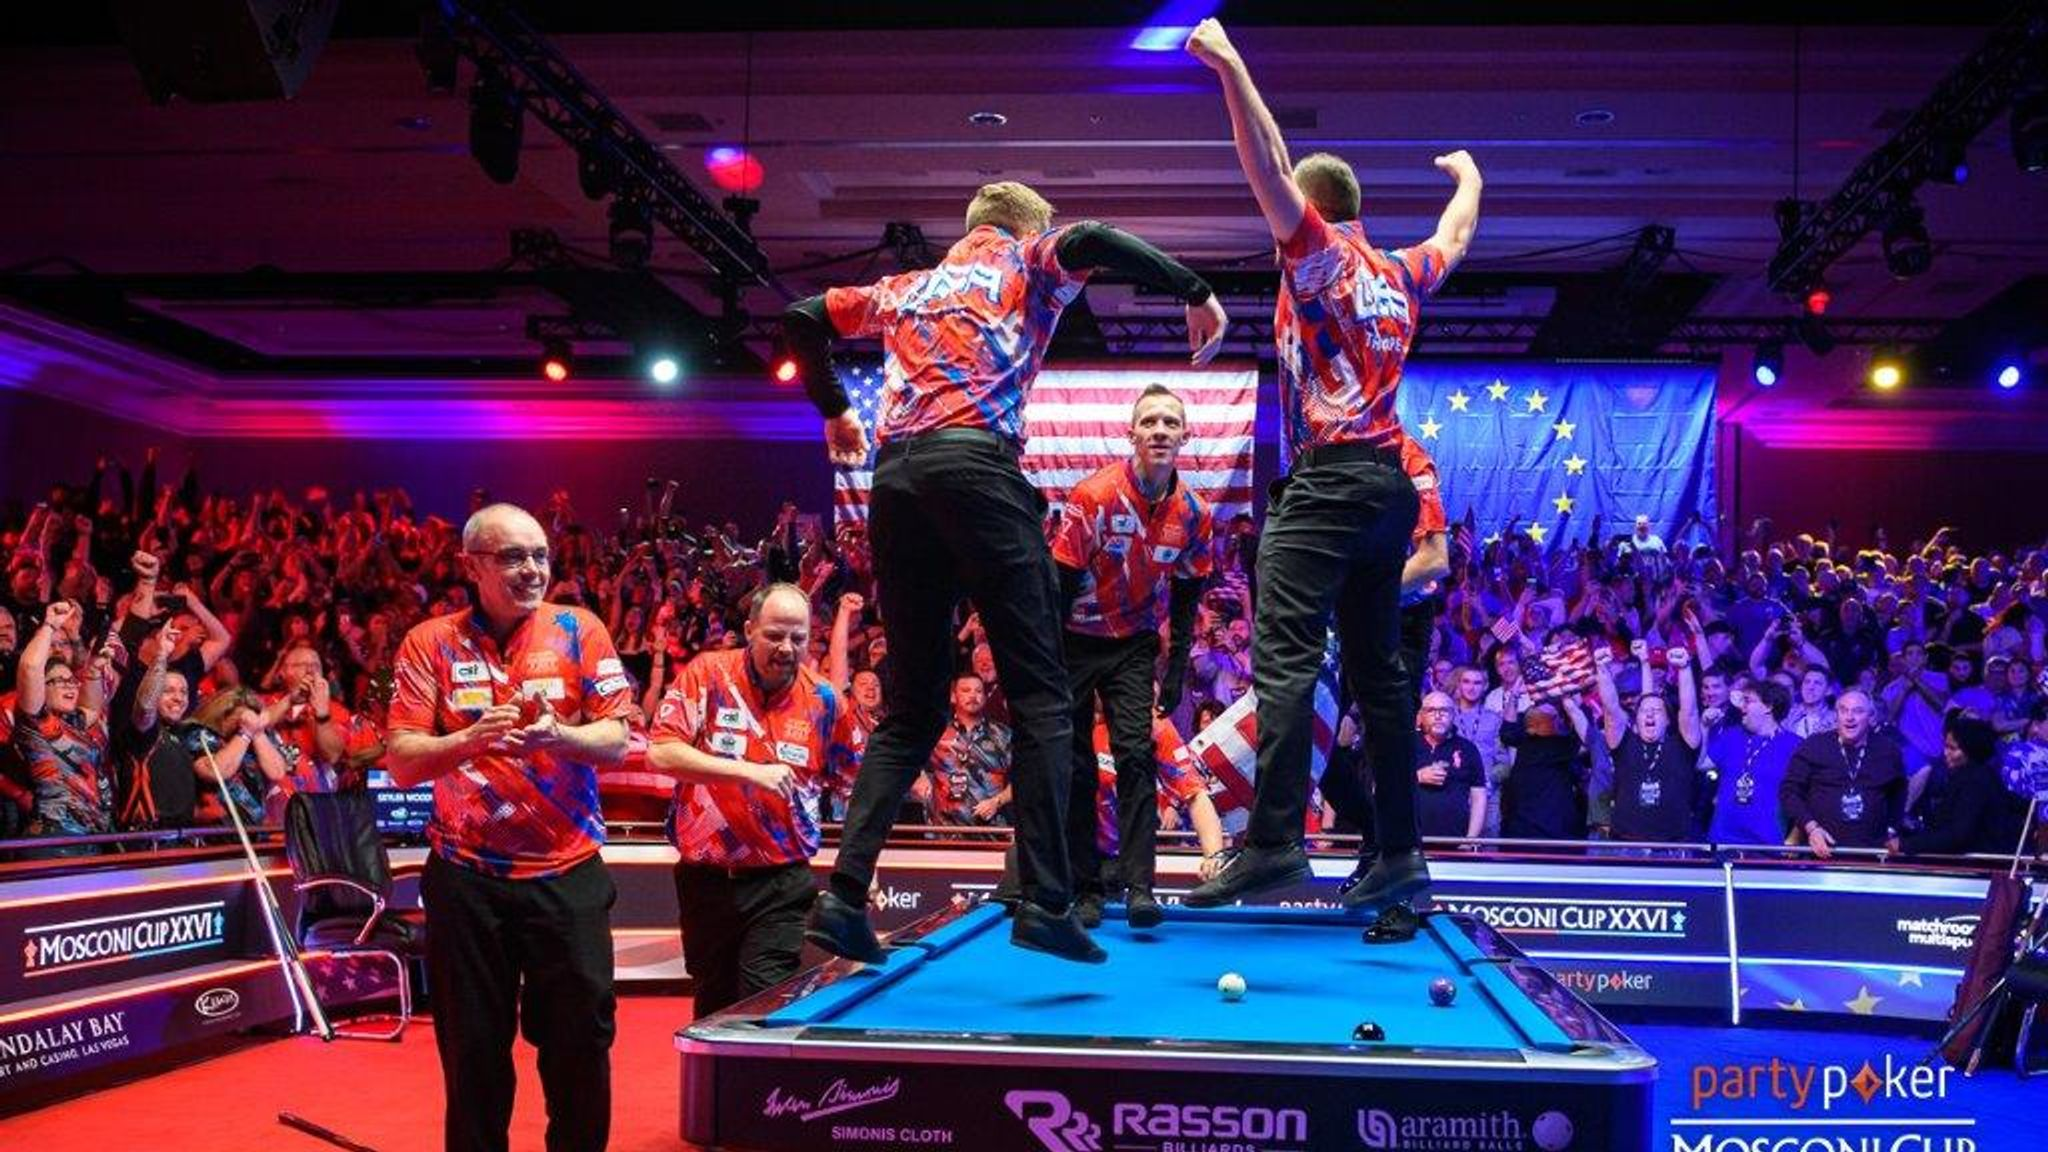 Mosconi Cup: Team USA retain trophy with victory over Team Europe ...